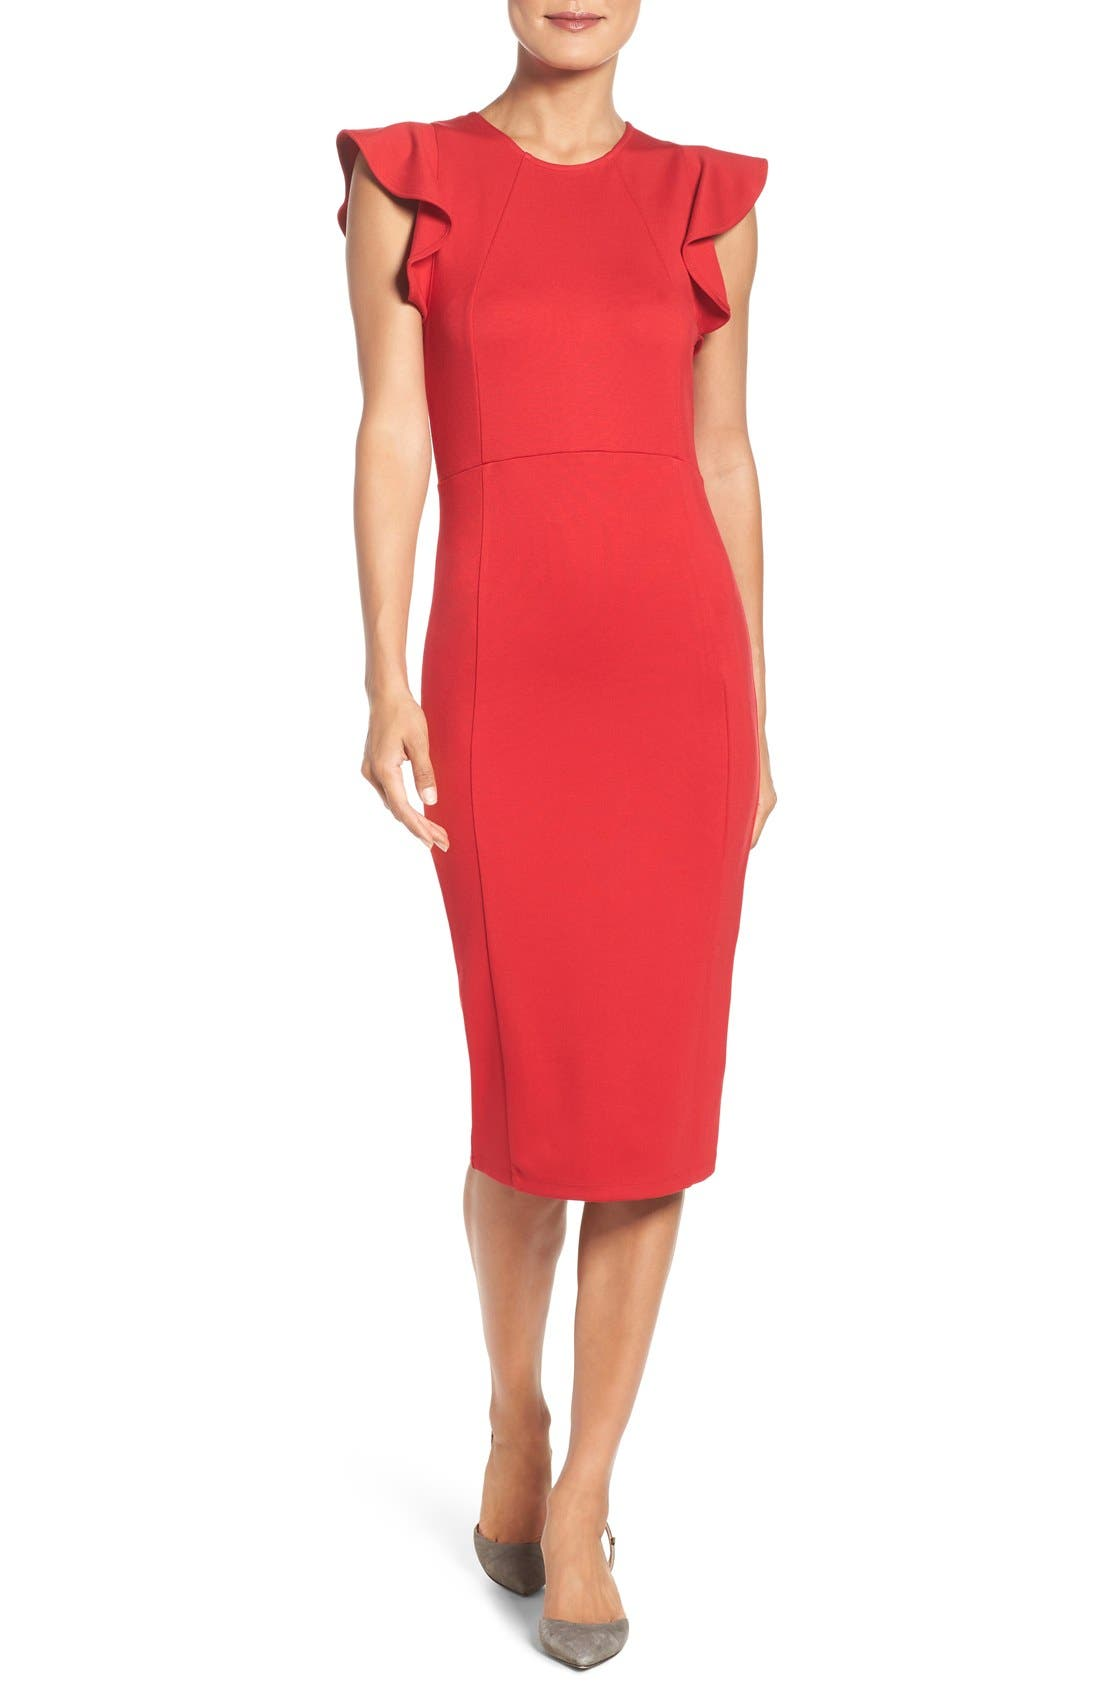 Alternate Image 1 Selected - Felicity & Coco Ruffle Sheath Dress (Nordstrom Exclusive)